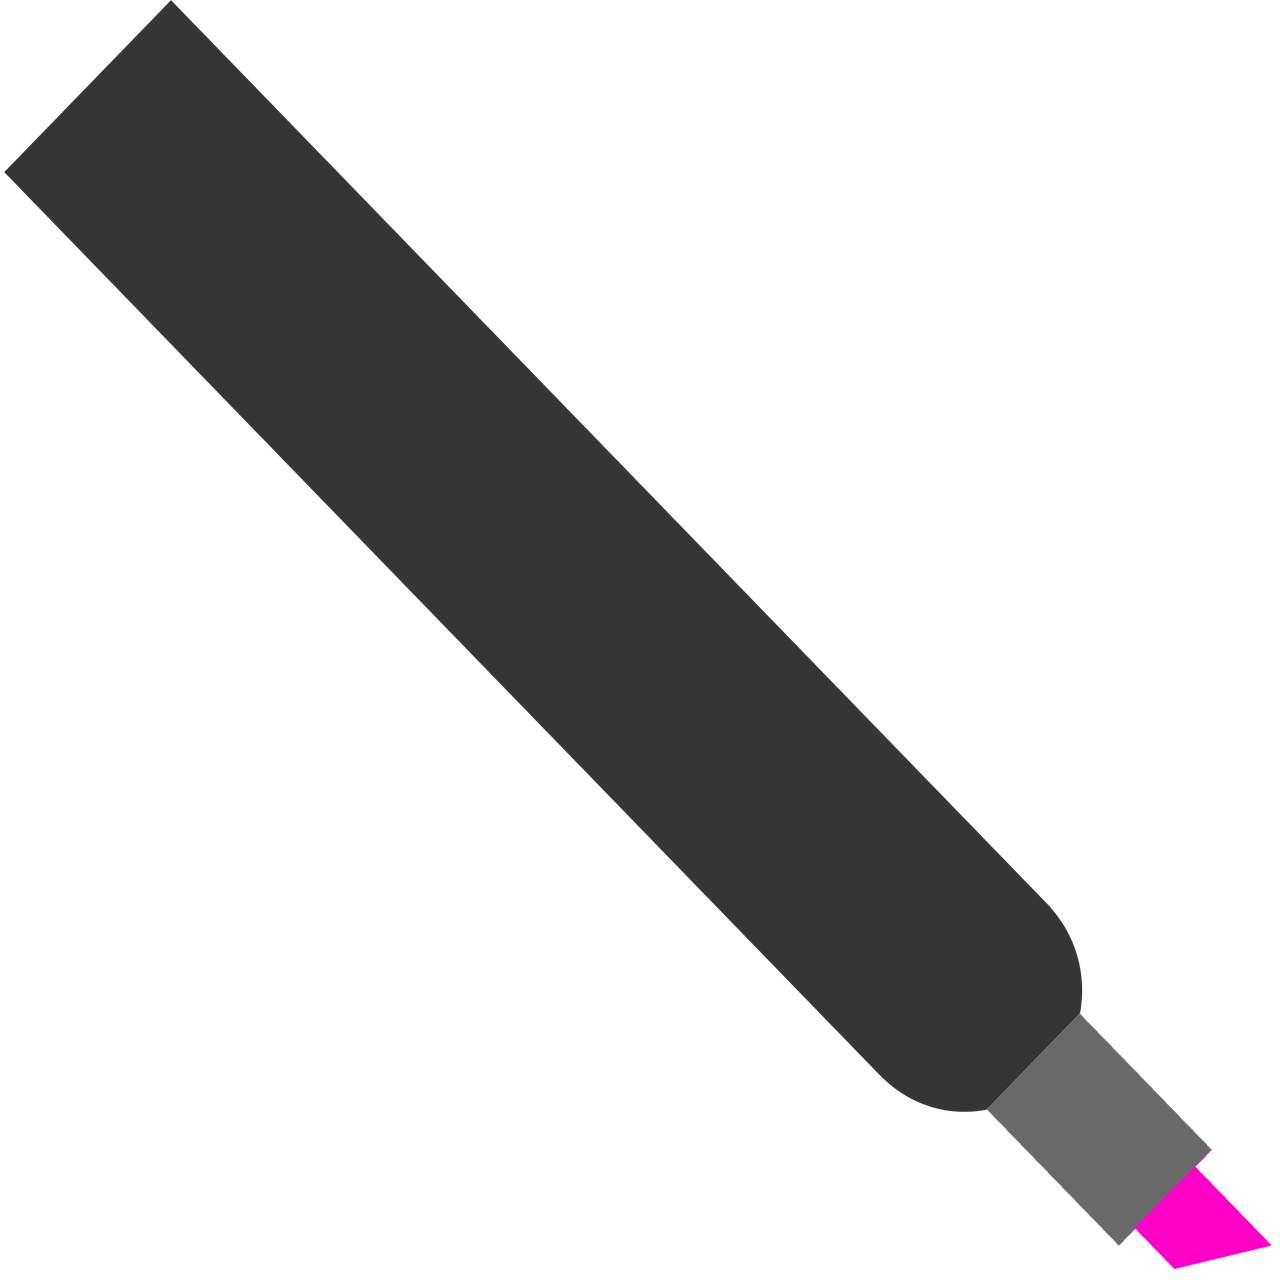 Highlighter Texmarker Neon - Free image on Pixabay